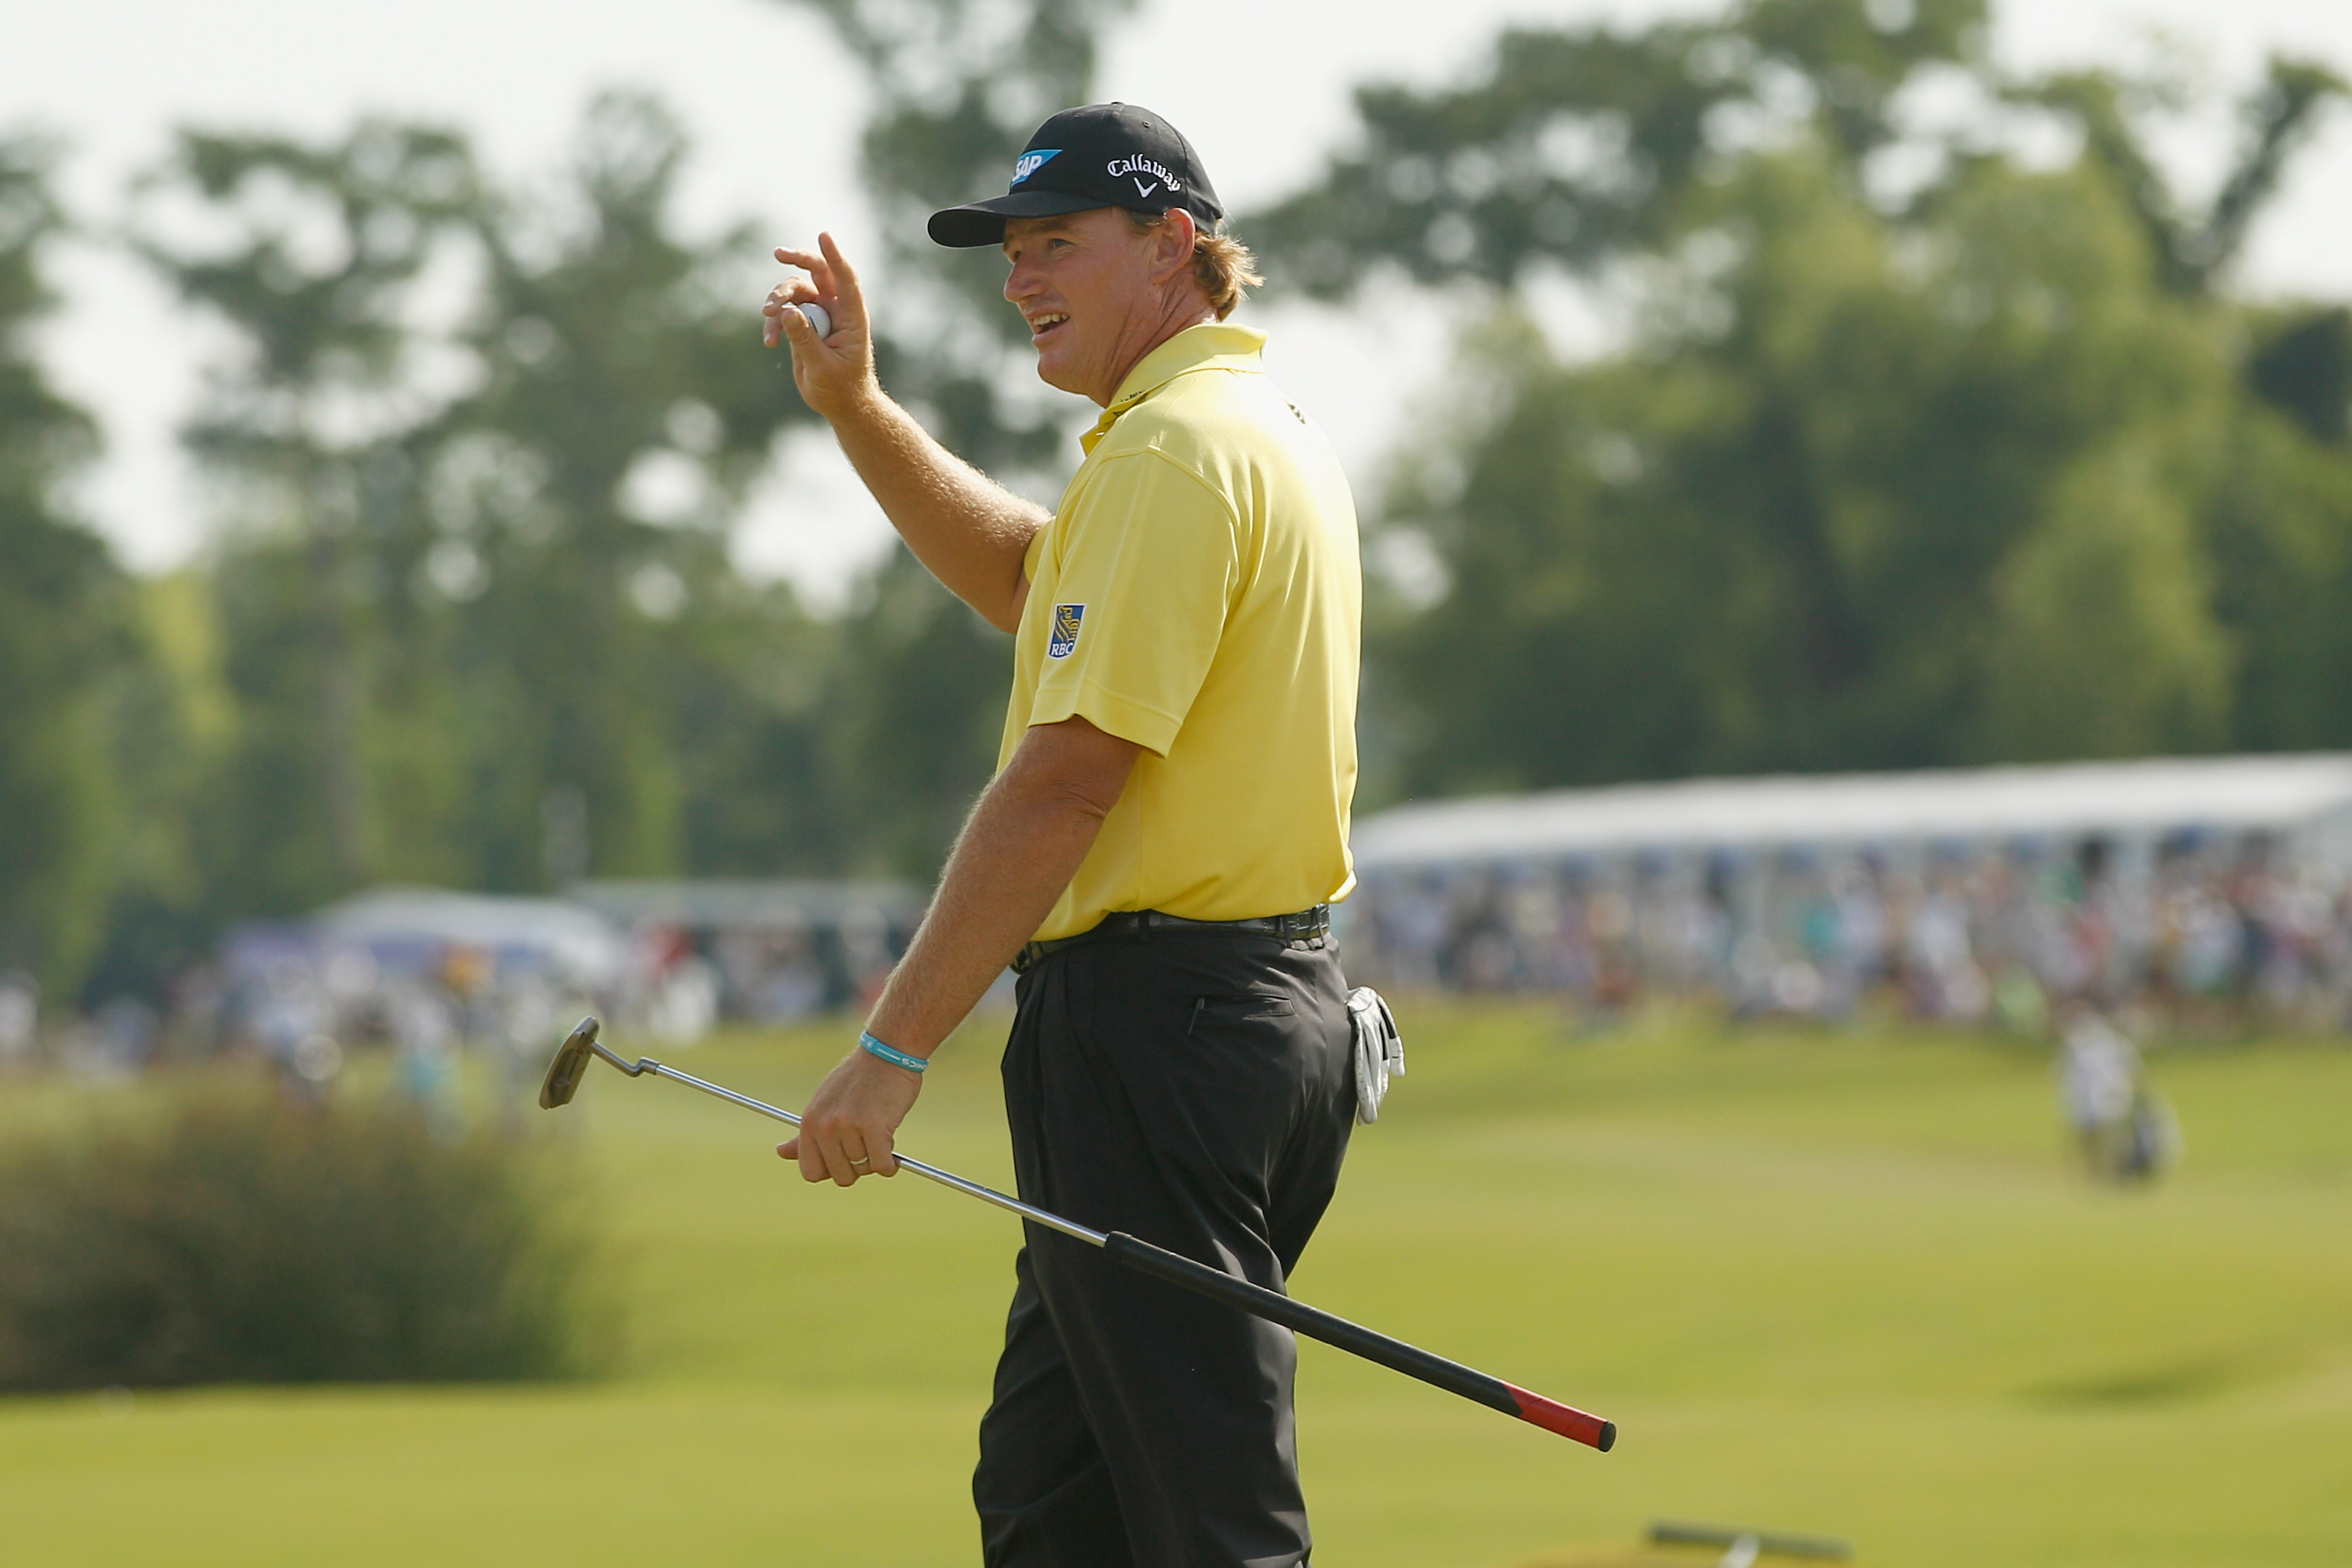 Ernie Els waves to the crowd after putting on No. 18 at the Zurich Classic. (Getty Images)